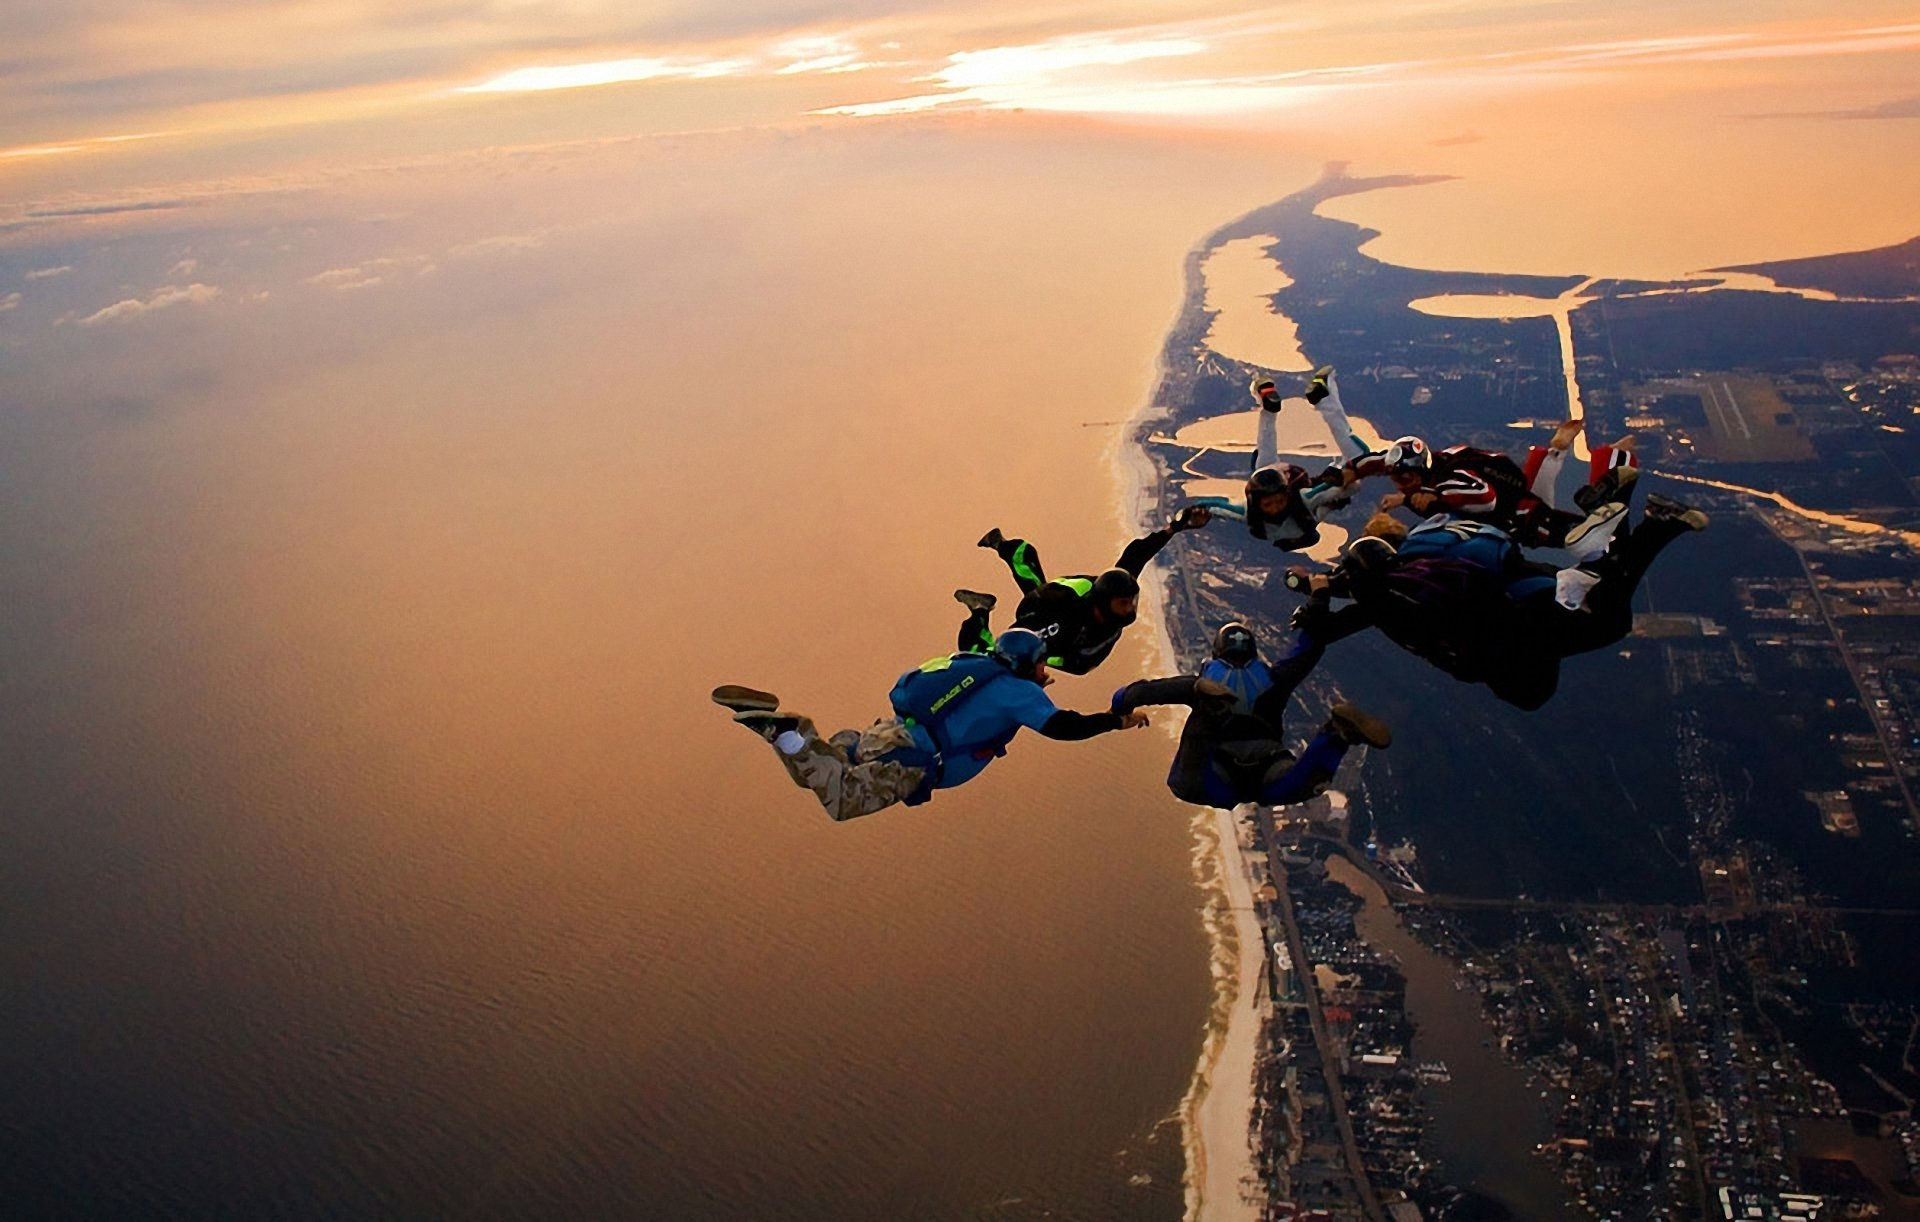 Sports - Skydiving  People Landscape City Wallpaper